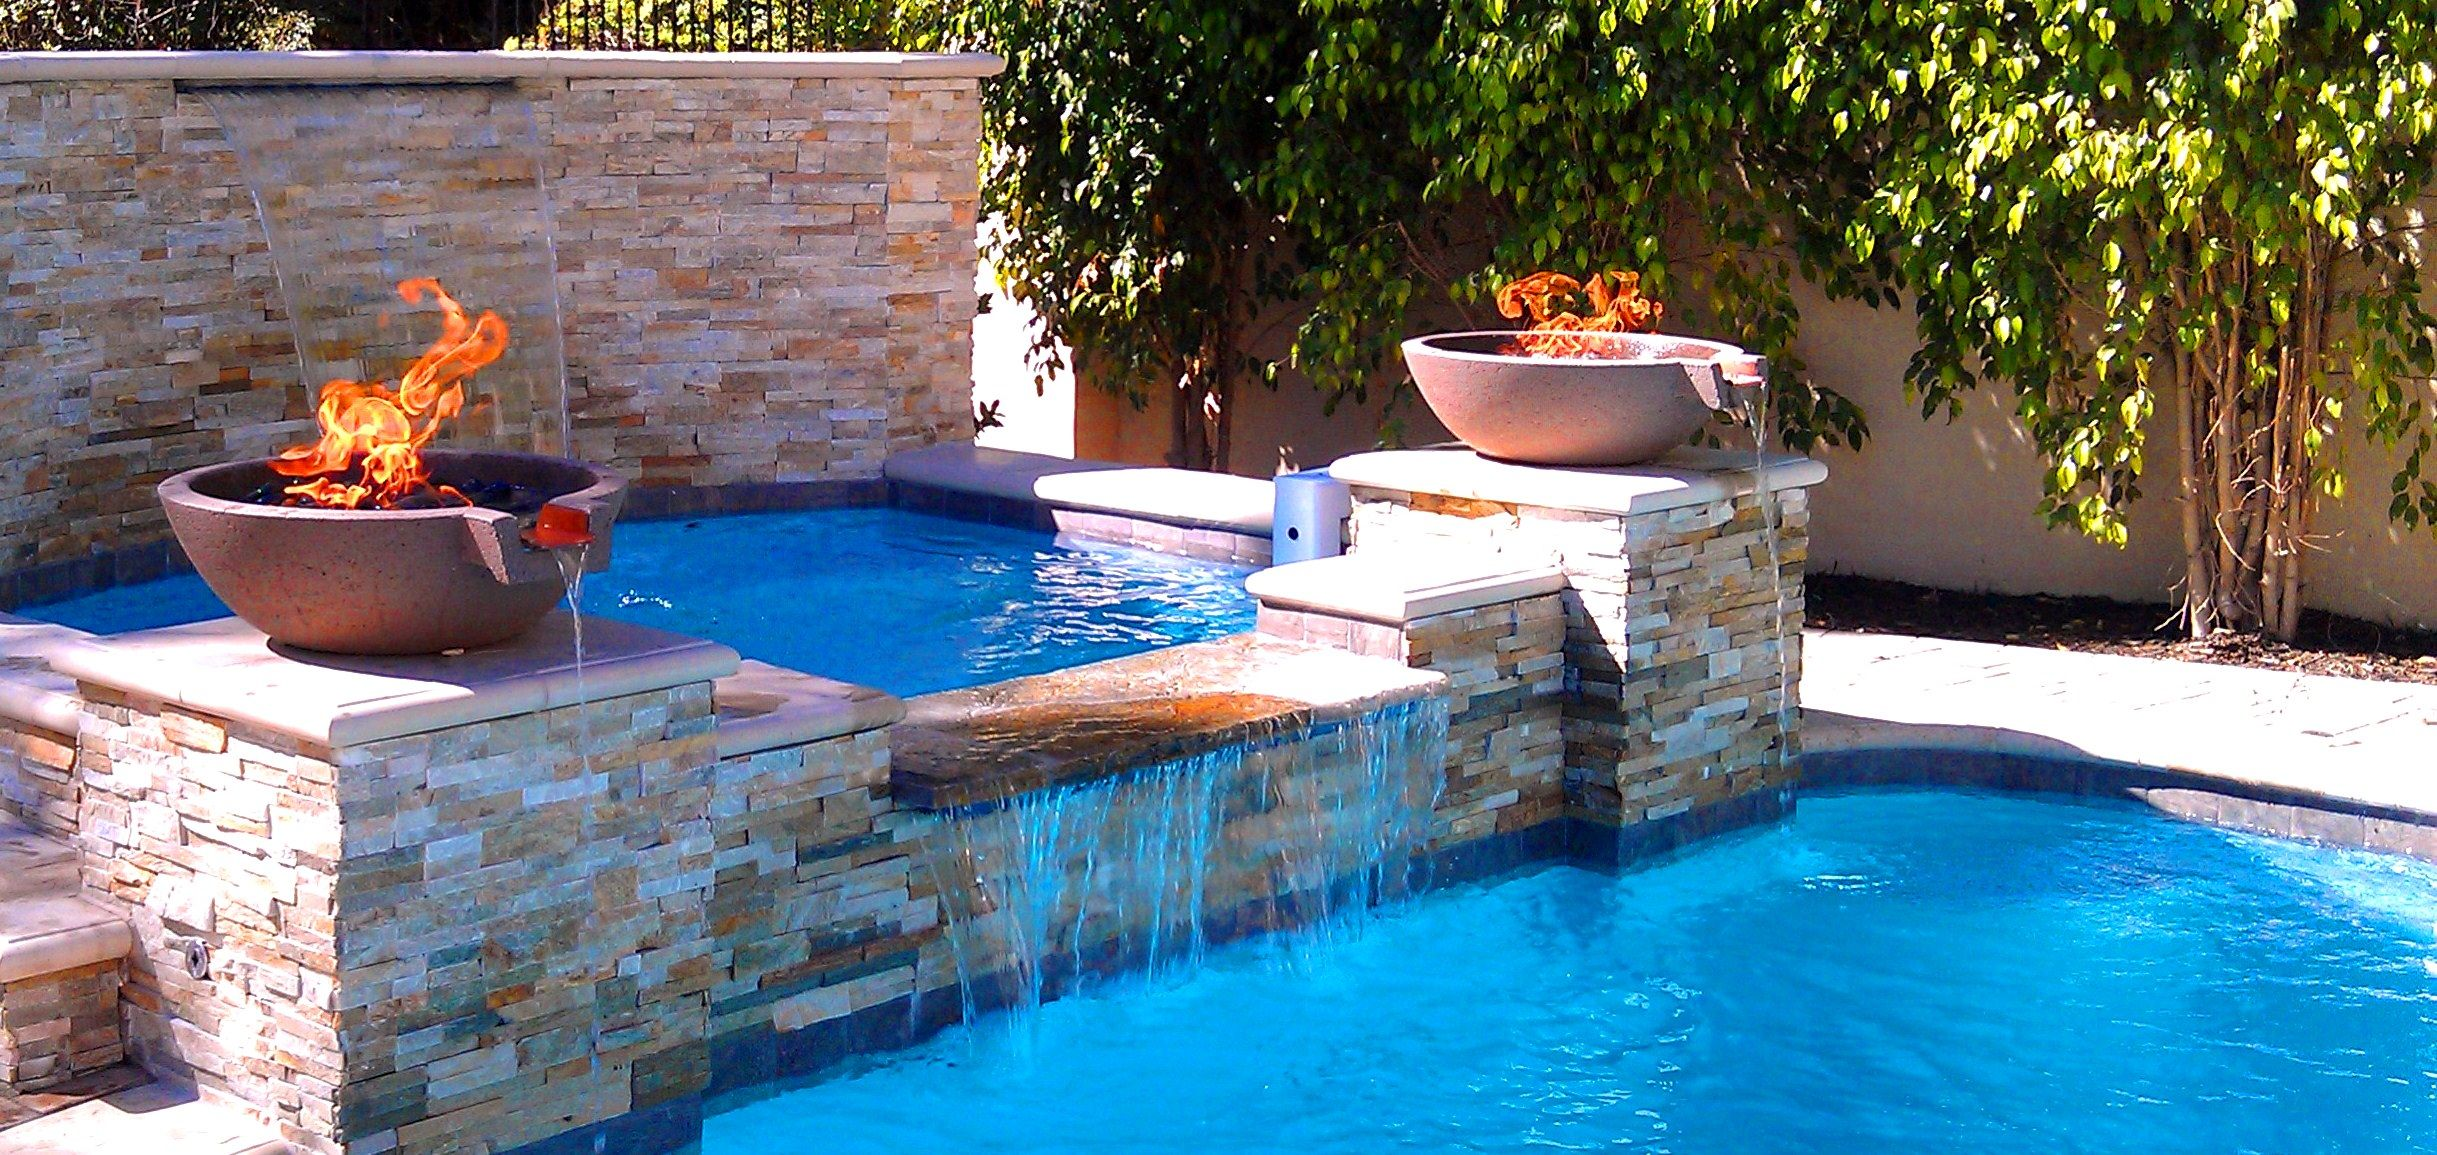 Pacific Outdoor Living | Pool designs, California pools ... on Southern Pools And Outdoor Living  id=72724